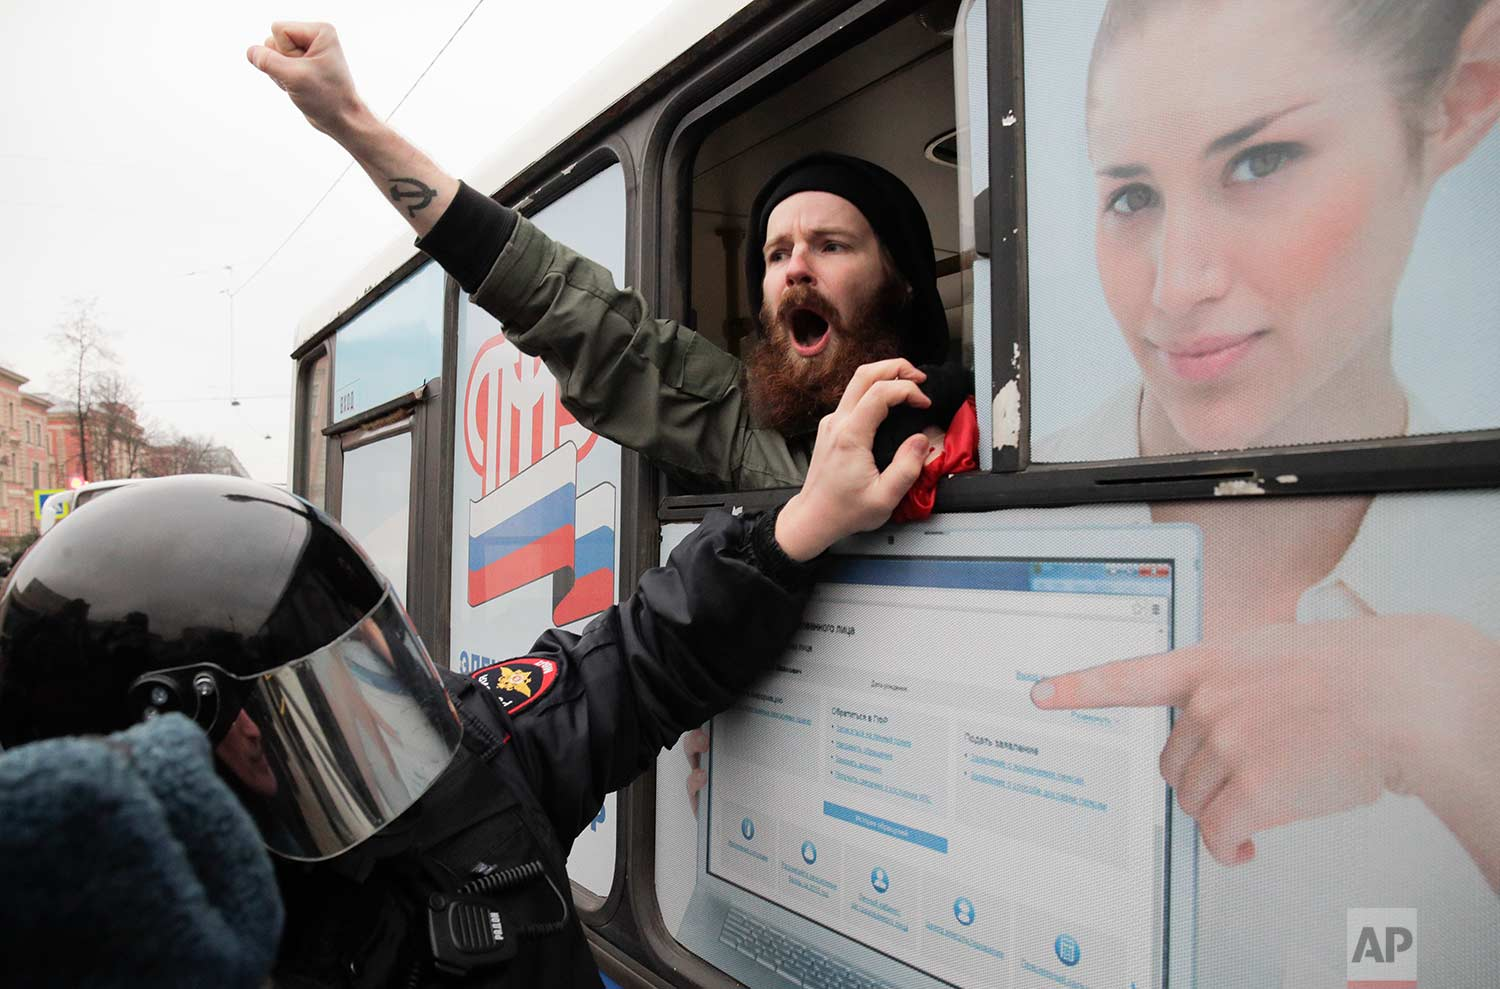 A detained member of the Other Russia movement shouts from a police bus during an unauthorized rally to mark the centenary of the Bolshevik Revolution in St. Petersburg, Russia, on Monday, Nov. 6, 2017. (AP Photo/Dmitri Lovetsky)